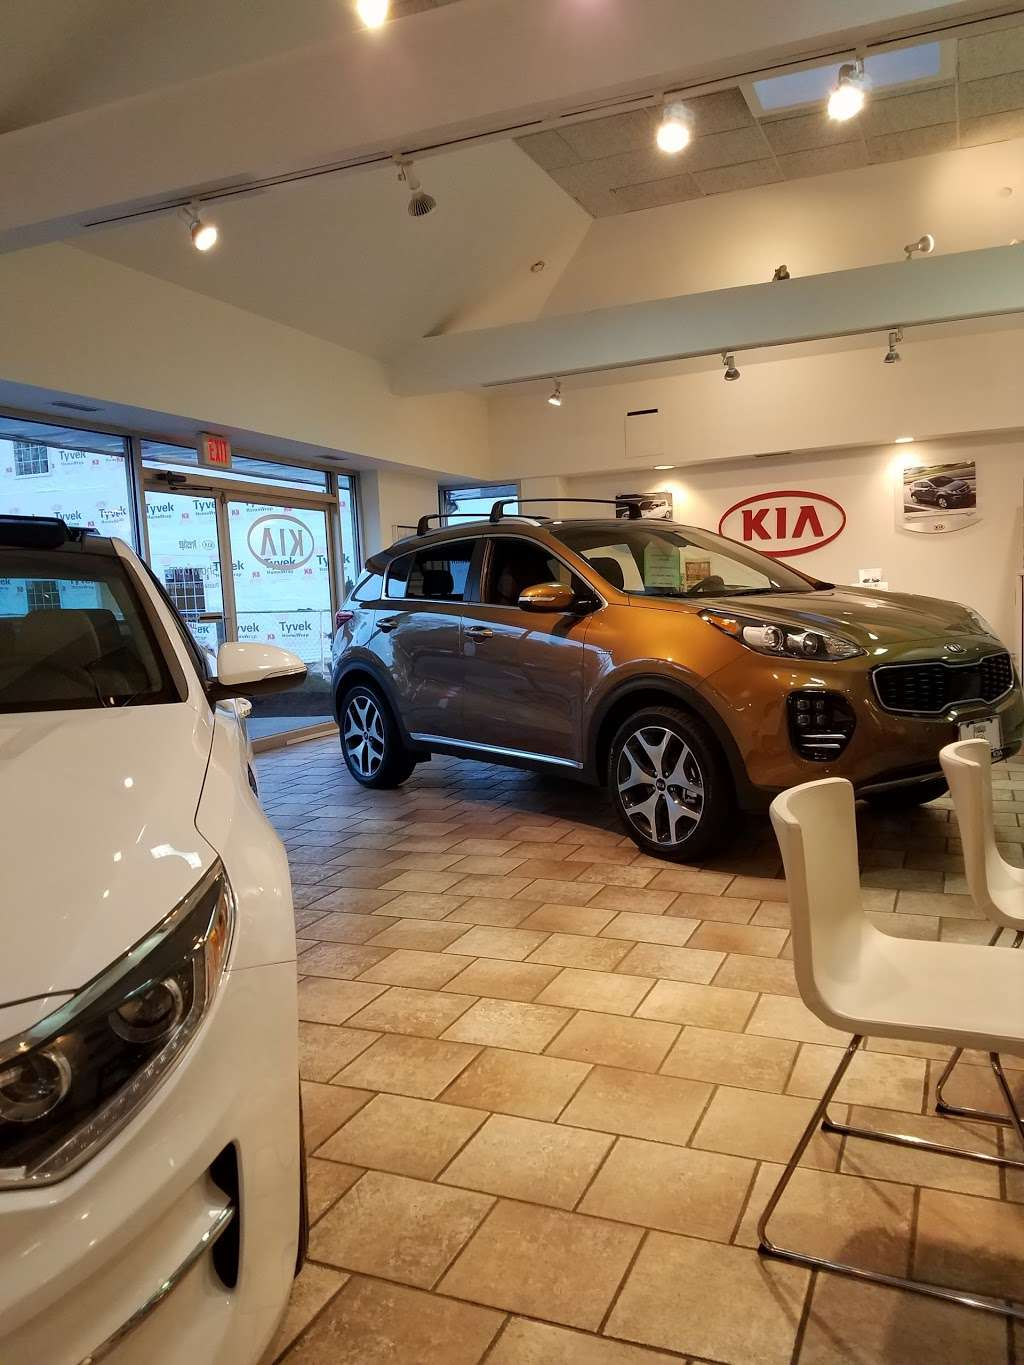 Prestige Kia - car dealer  | Photo 1 of 10 | Address: 95 County Rd, Tenafly, NJ 07670, USA | Phone: (201) 871-9400